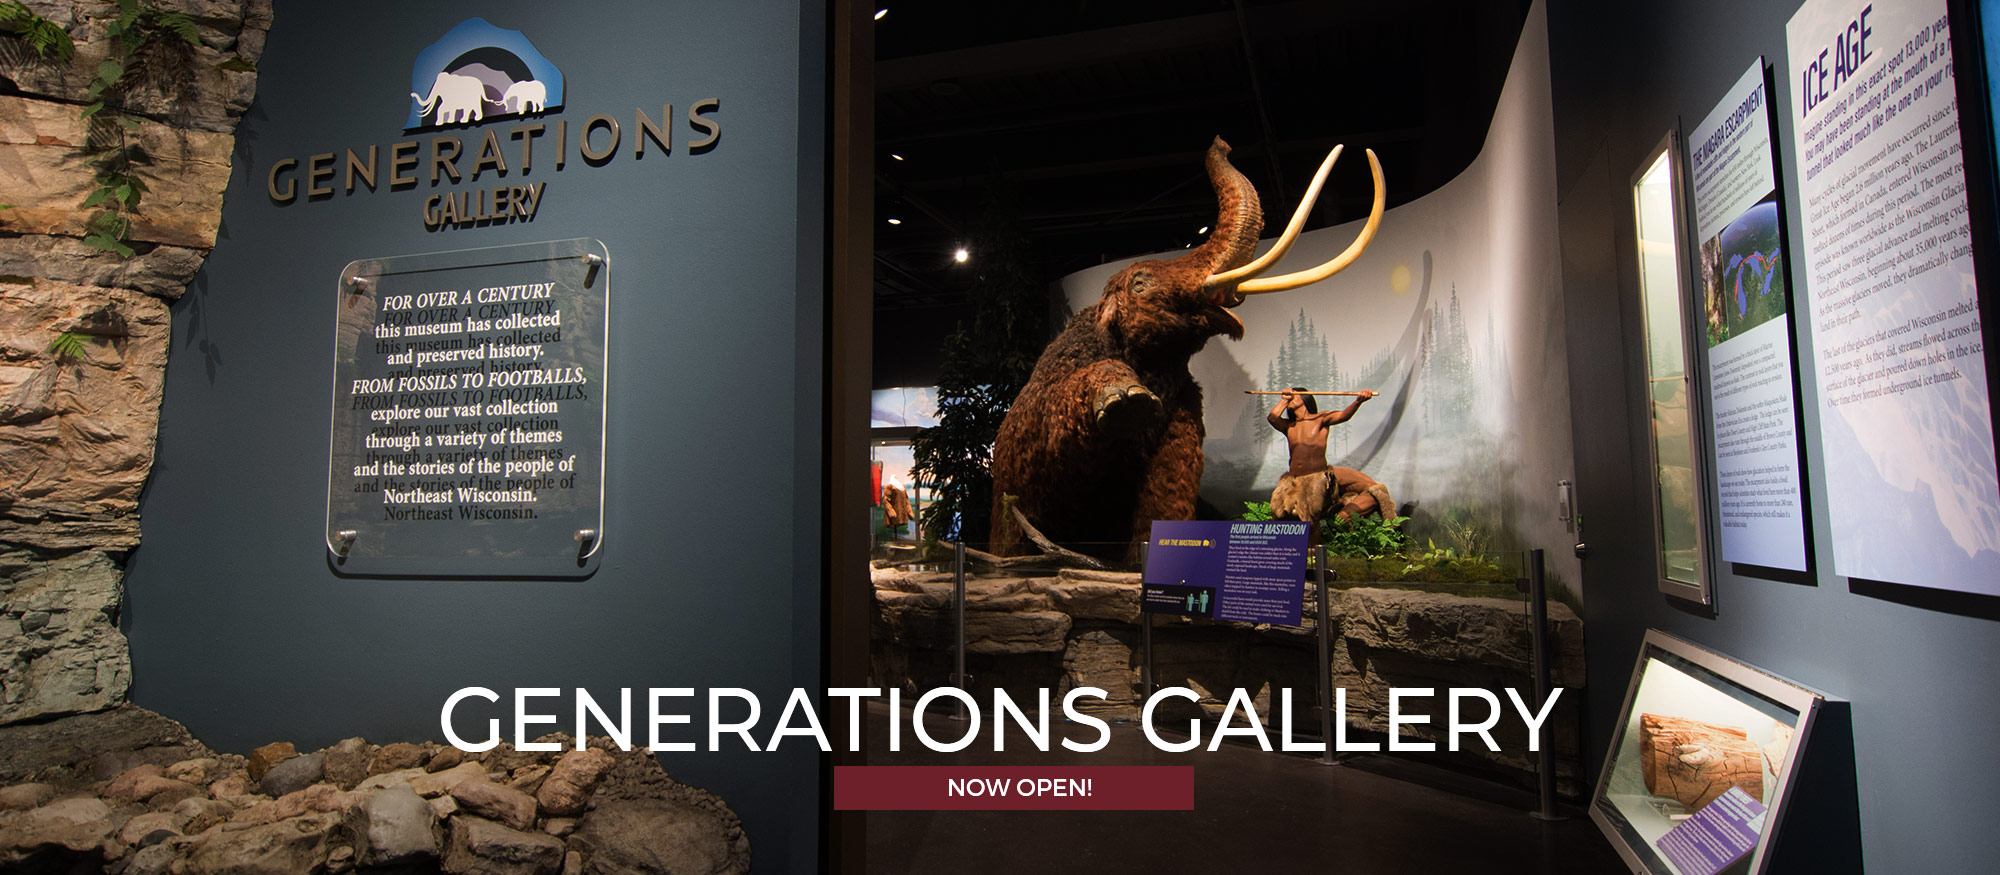 Photo of Generations gallery with mastodon and Title